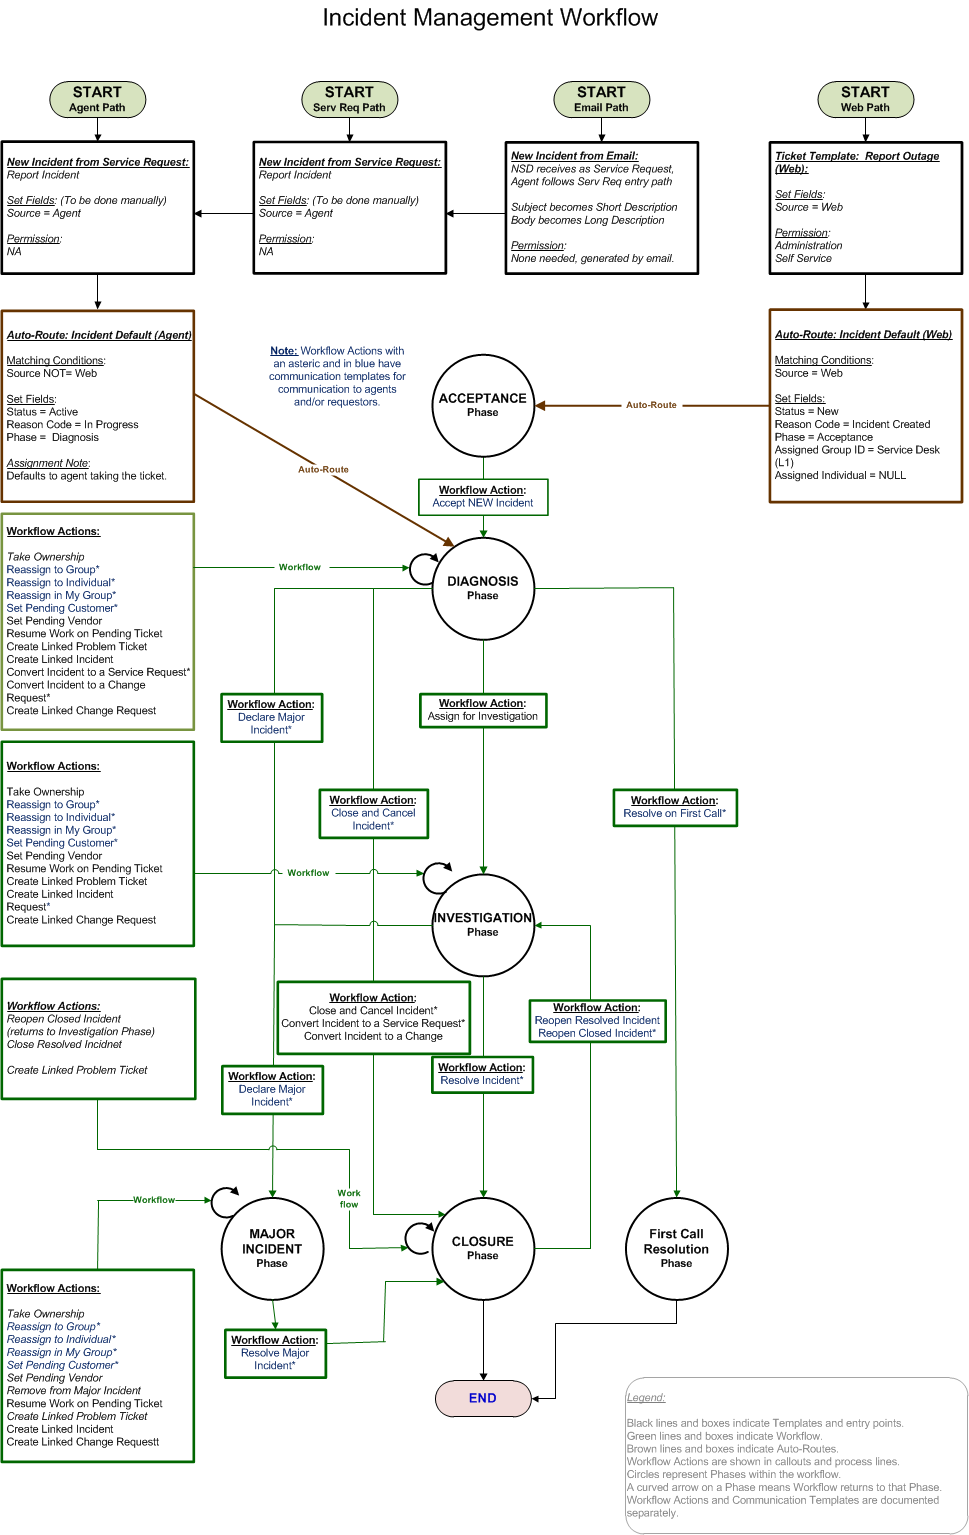 incident management process flow - Google Search Process Map, Process Flow,  Reliability Engineering,